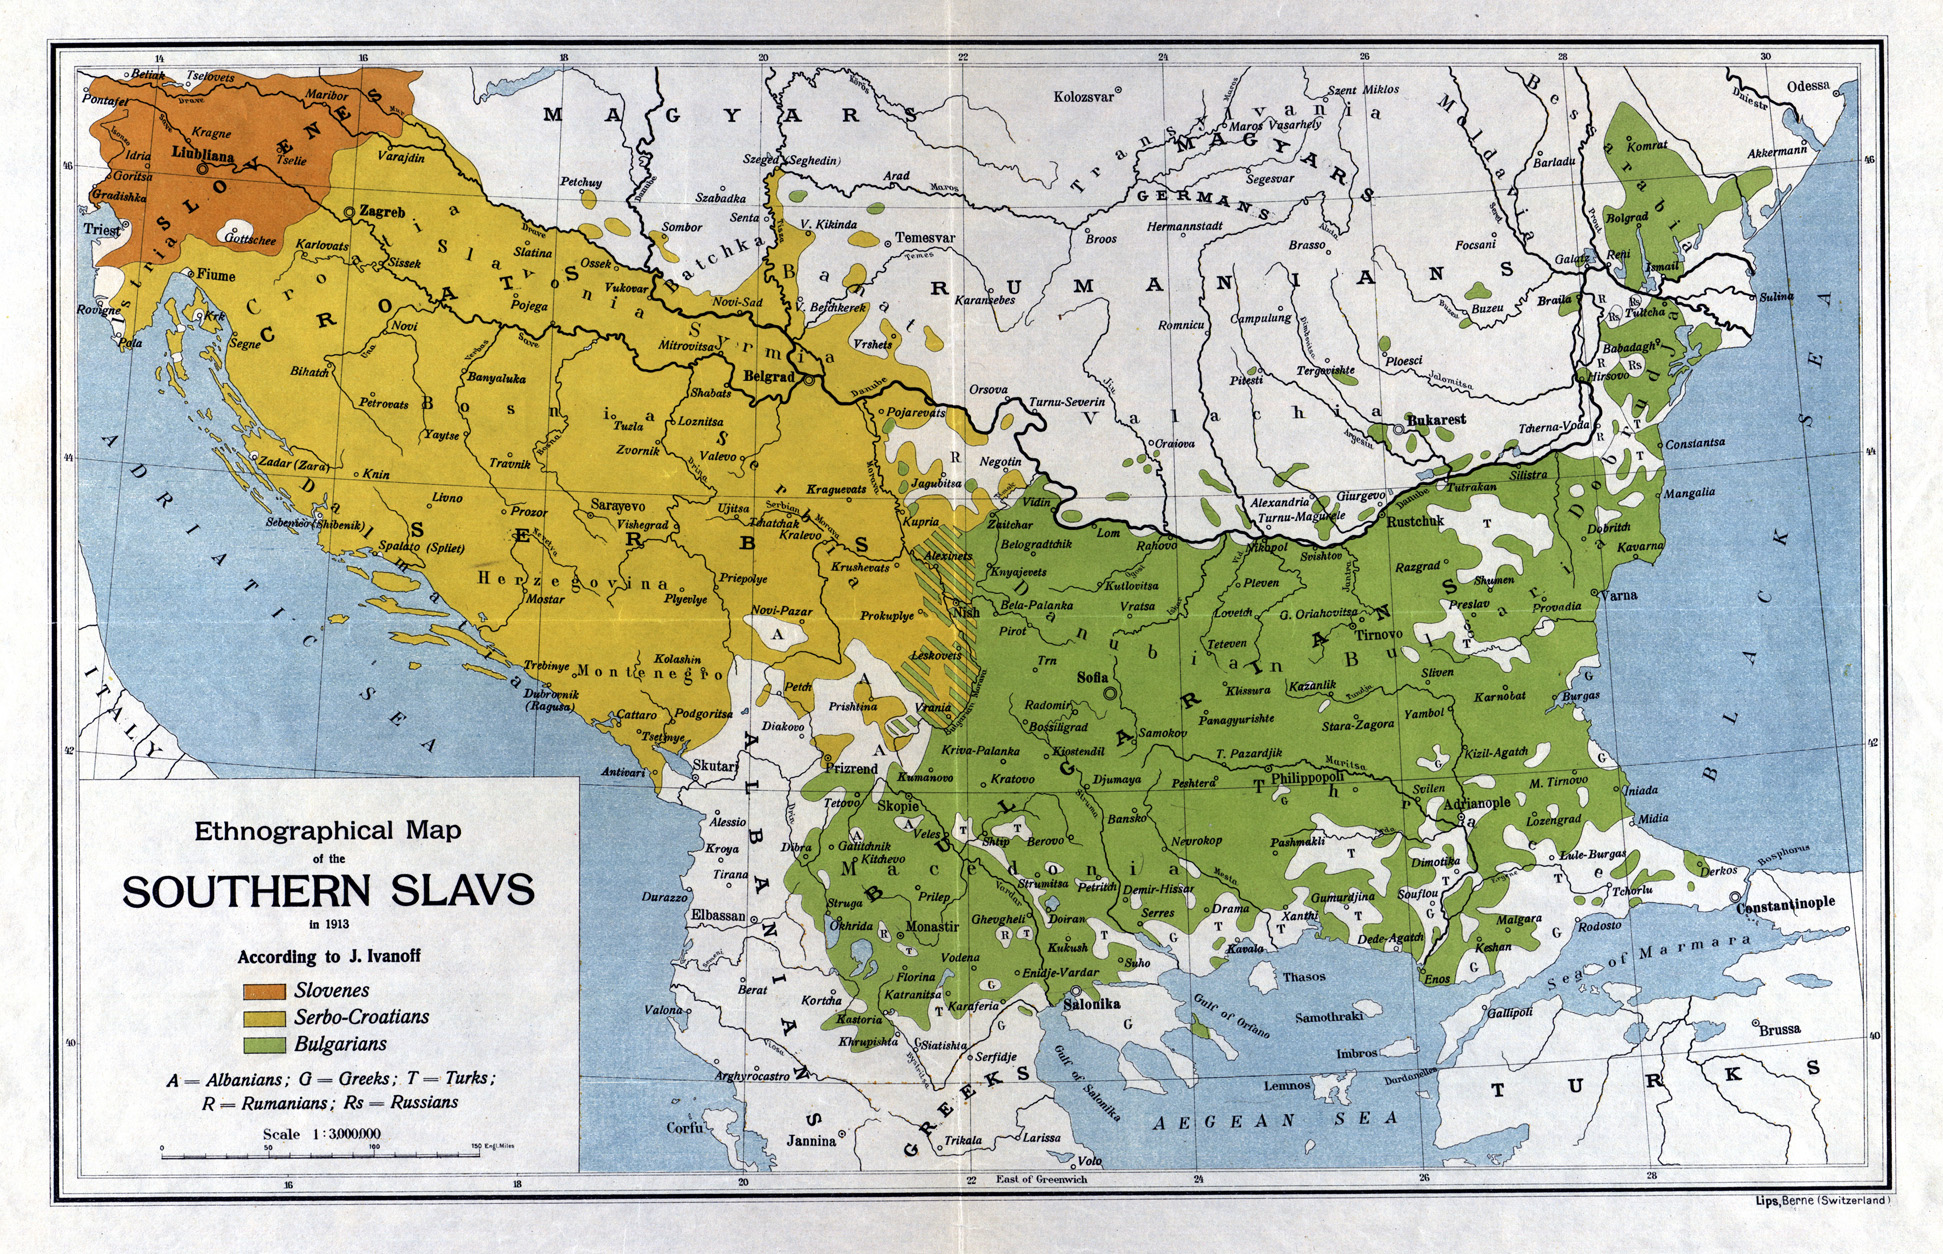 Ethnographic_map_of_the_Southern_Slavs,_1913